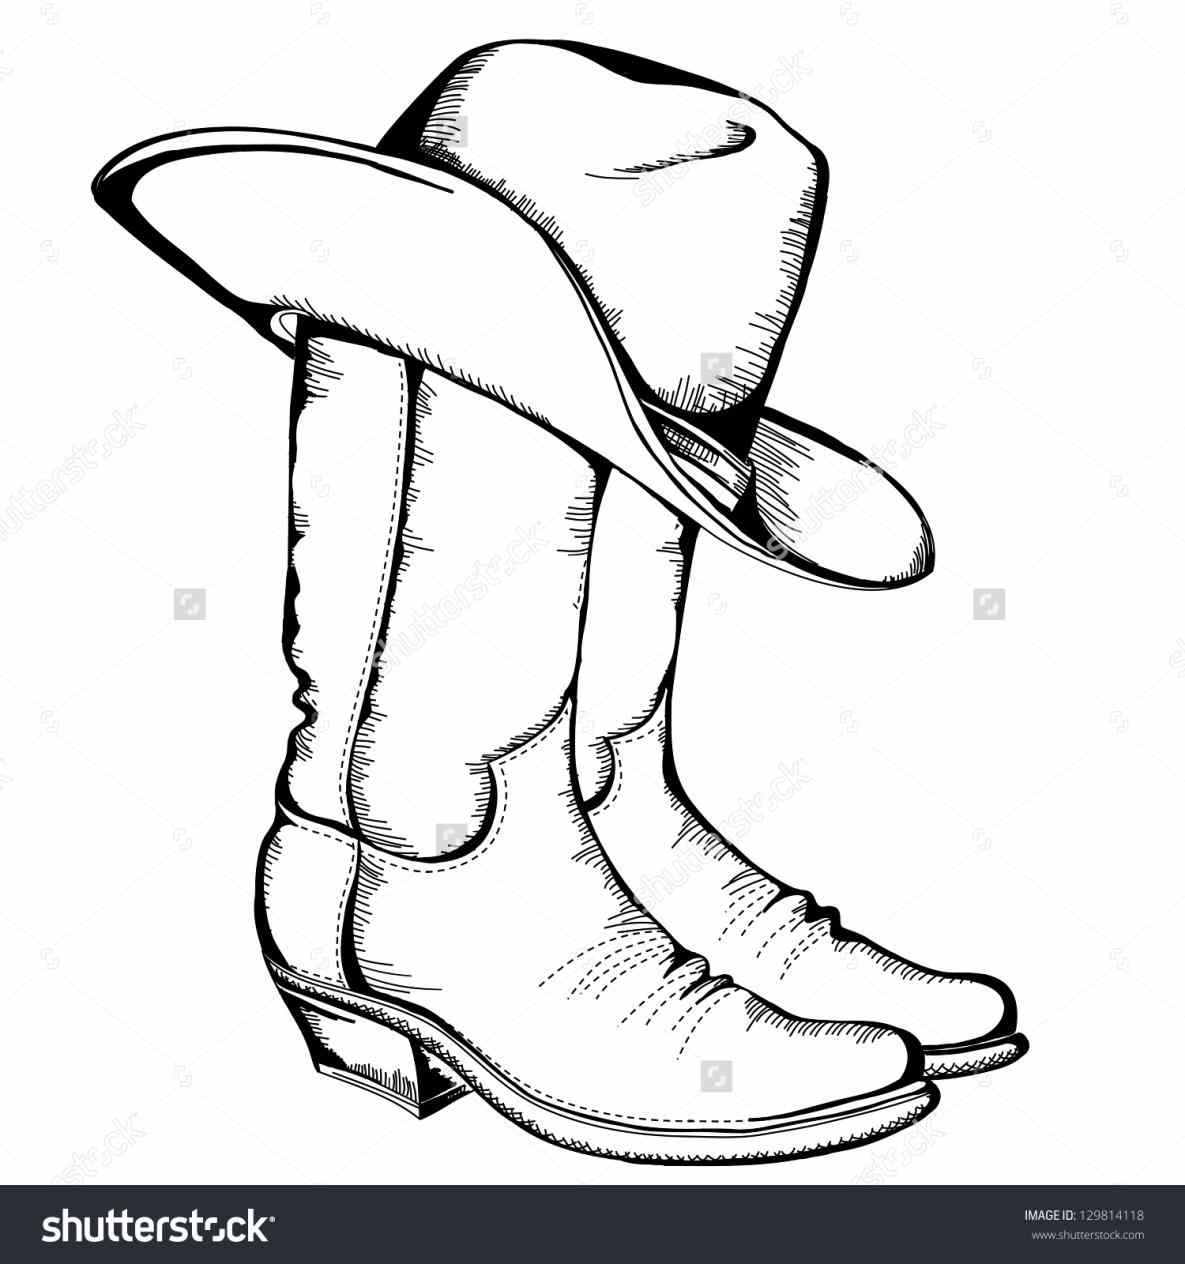 1185x1264 Of Group S Simple Cowboy Boot Drawing Of Group Clip Art And Hat